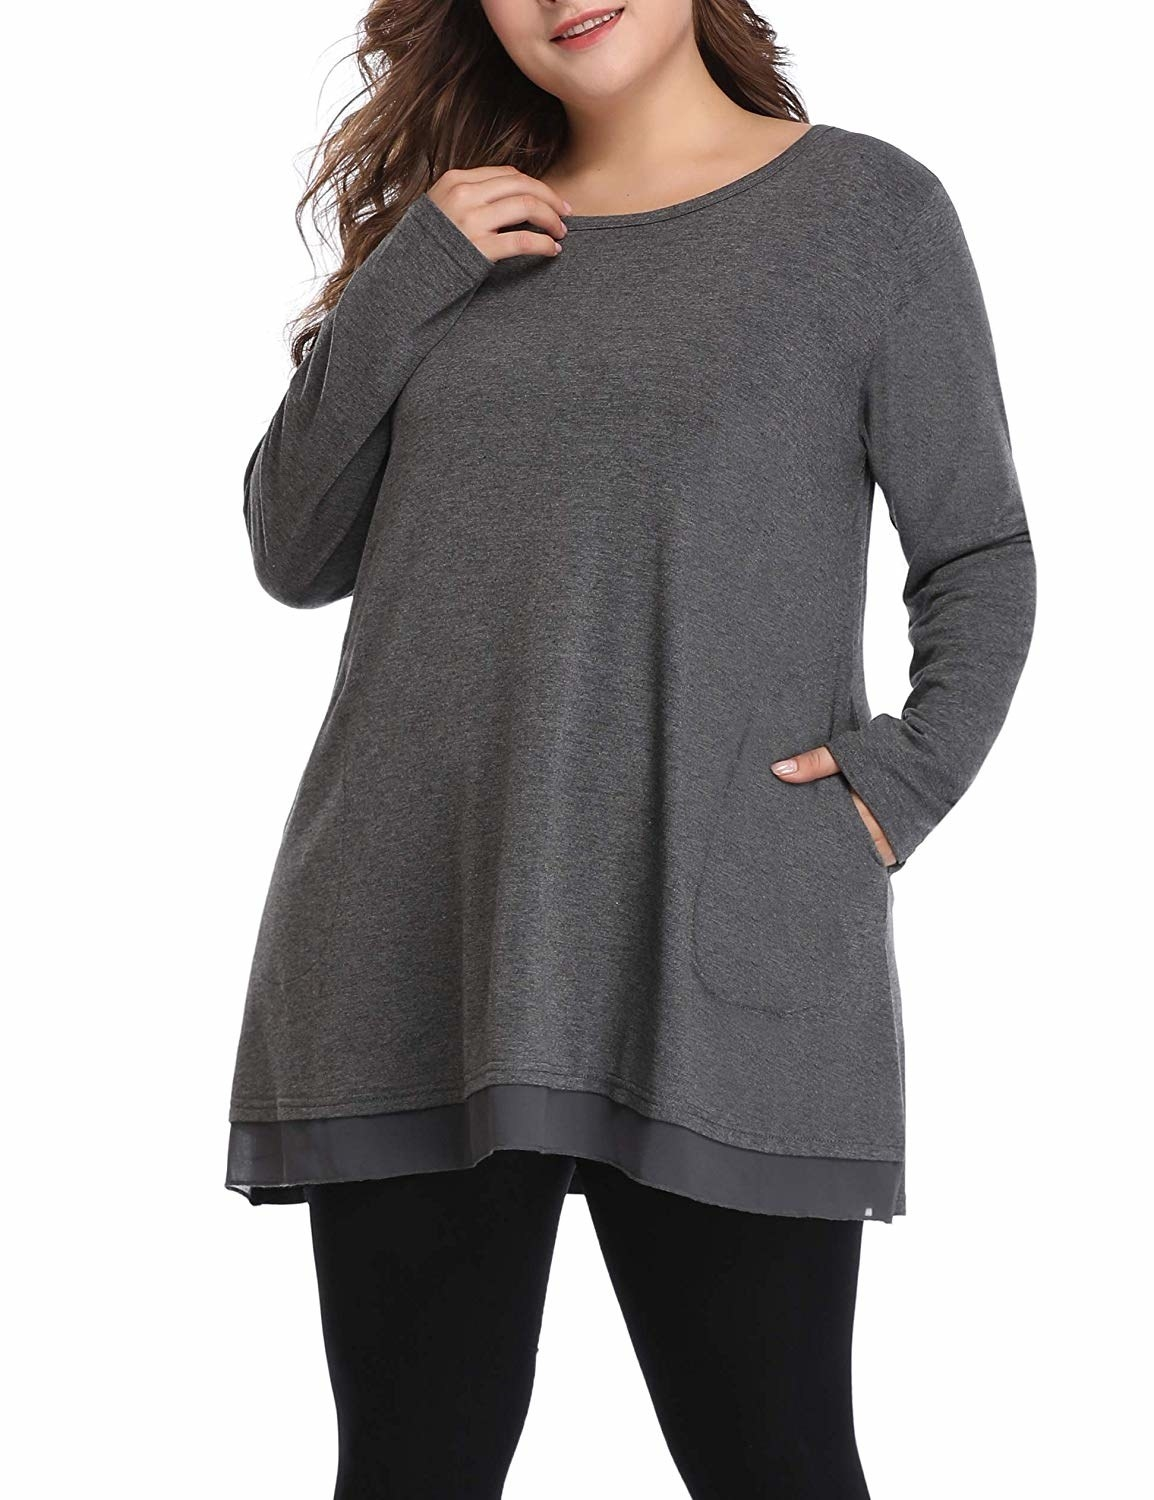 """Promising review: """"The fit was perfect: it's light, comfortable, and best of all, has pockets!! I love this and will order it in all of the colors."""" —Karen NewlandGet it from Amazon for .99+ (available in sizes 1X-5X and two colors)."""